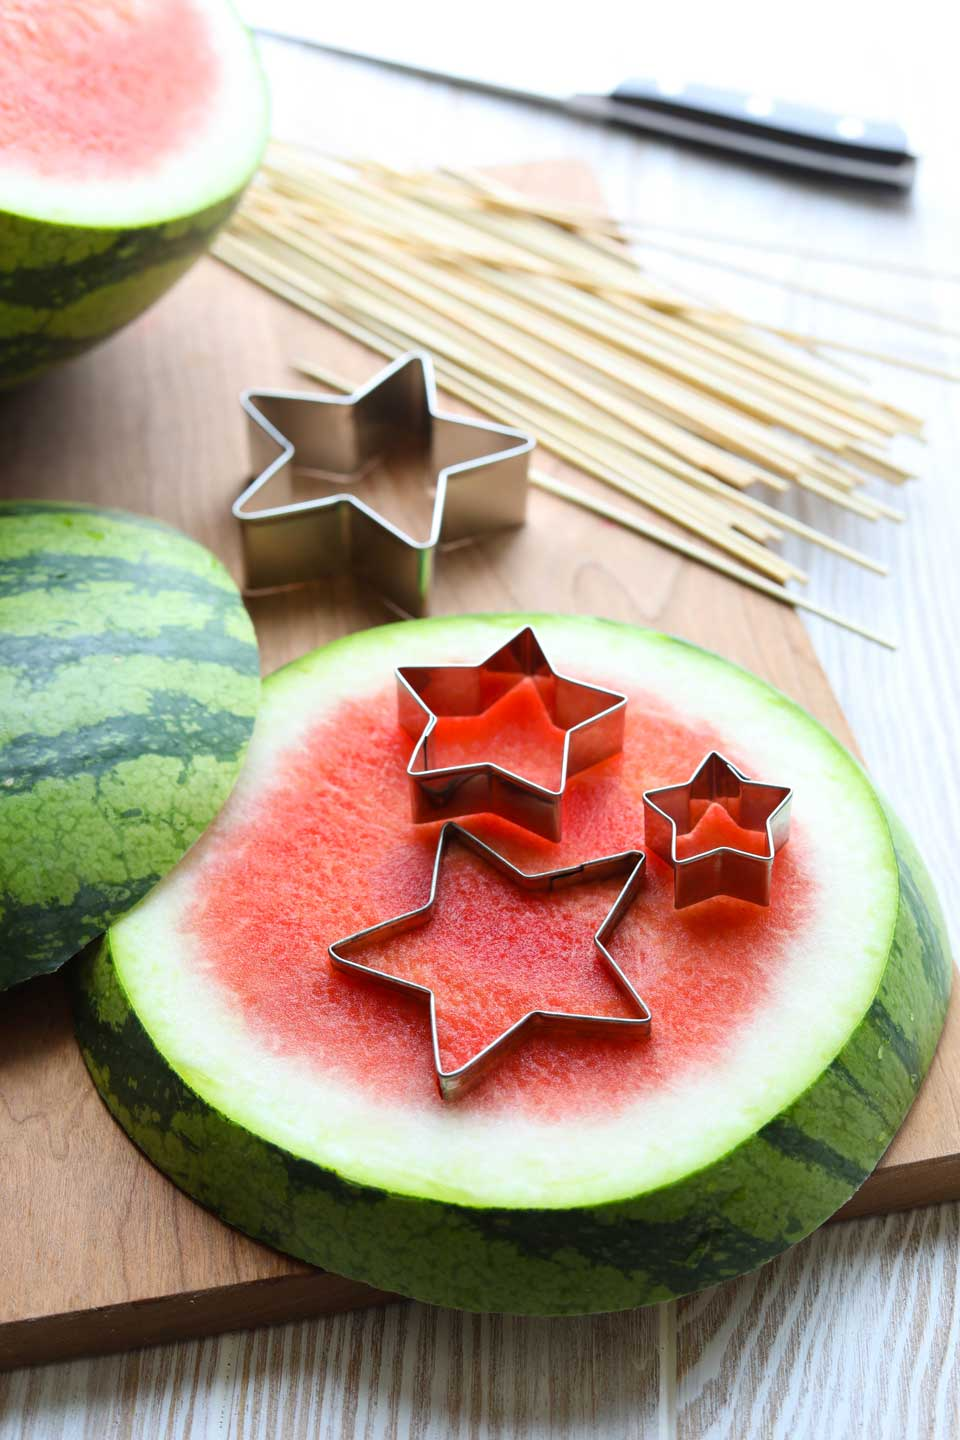 Slices of watermelon on a cutting board, with star cookie cutters and skewers to make fruit kabobs